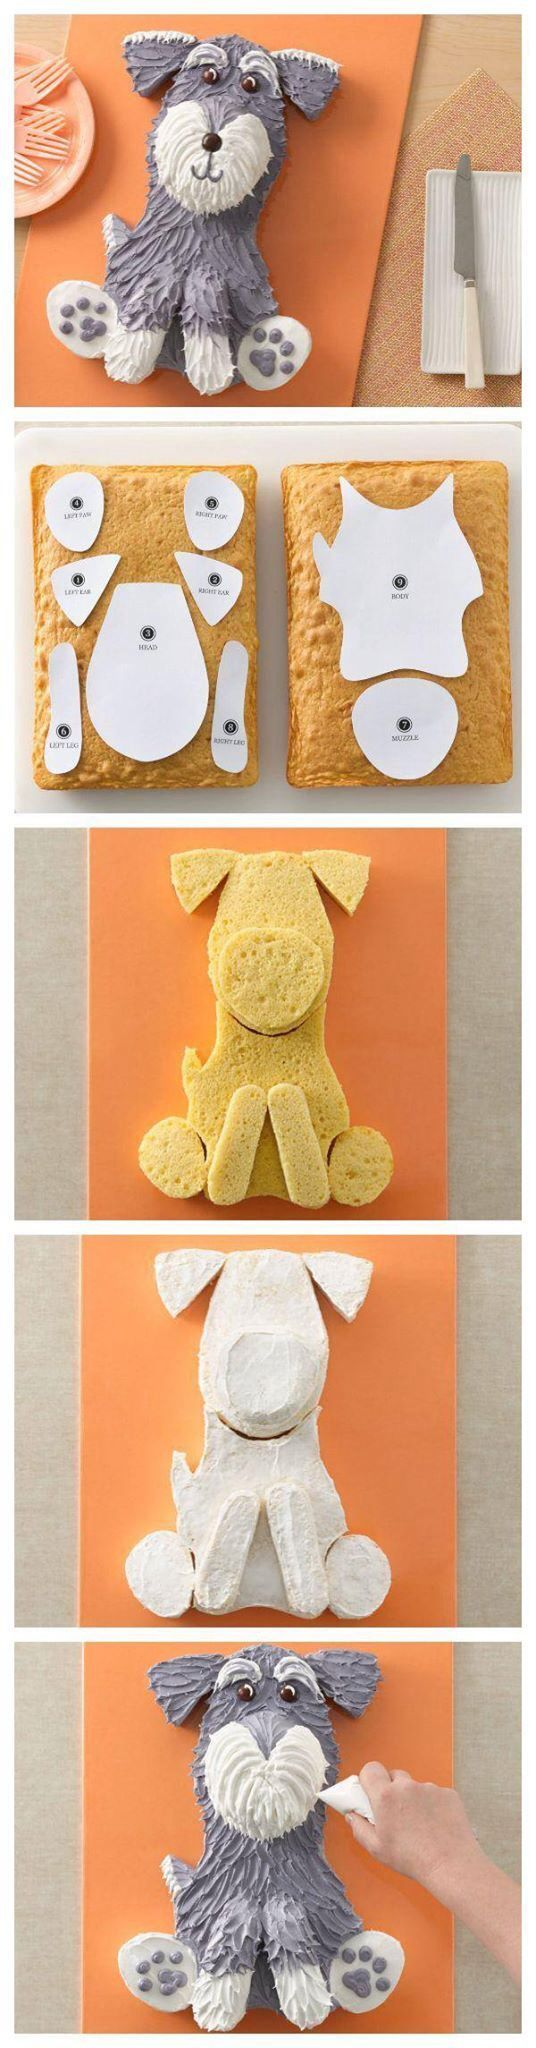 So cute! I have to make this because I LOVE Schnauzers! A fun cake for a dog themed birthday party